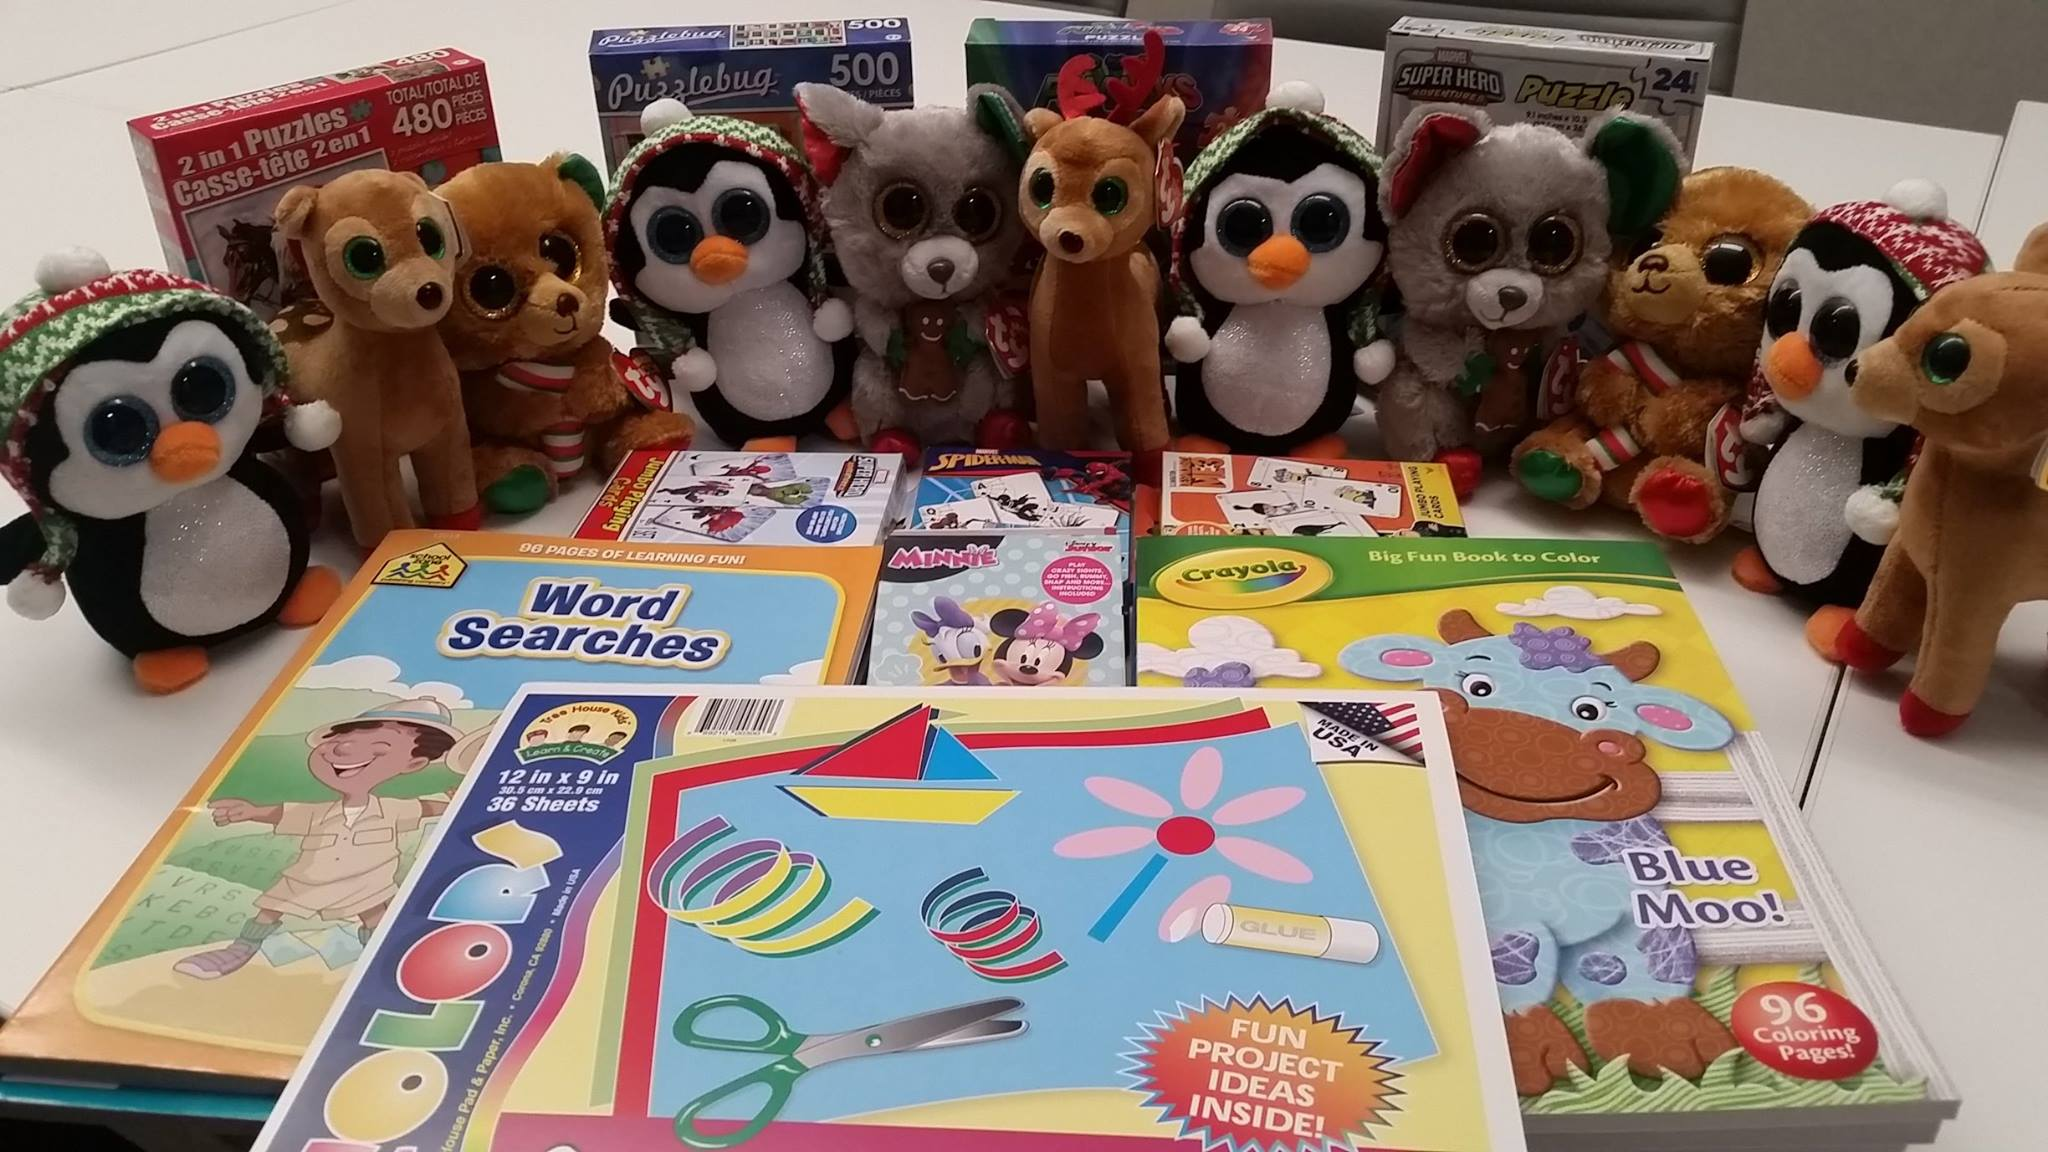 Ronald McDonald House Donation of Books and Stuffed Animals